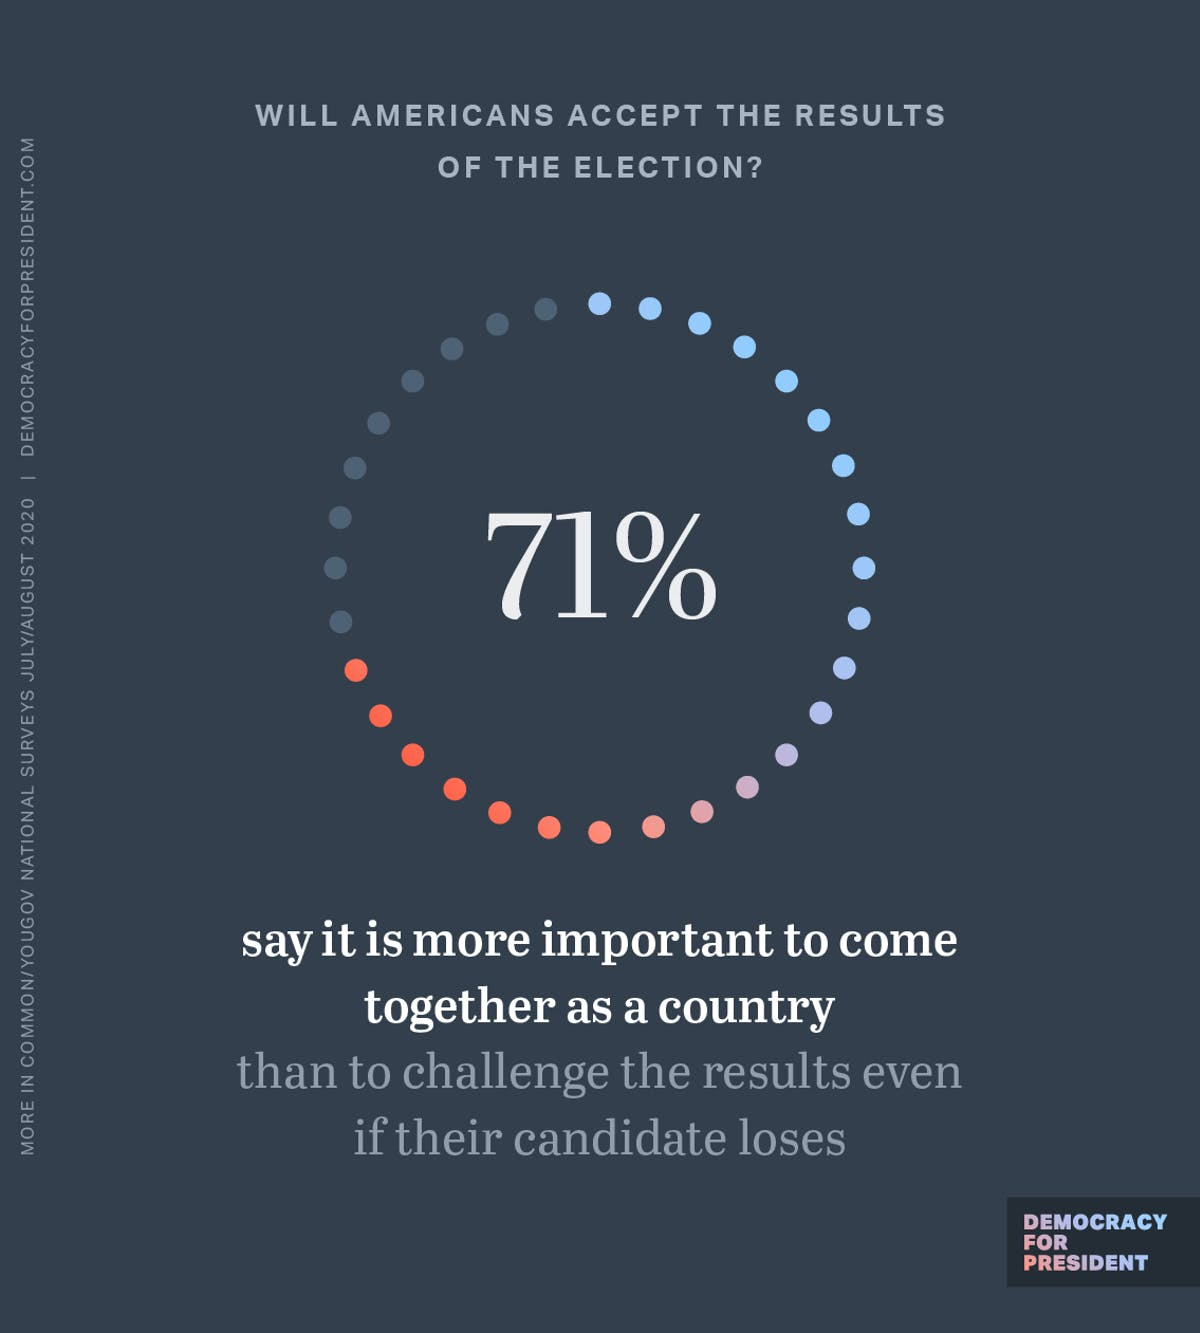 Will Americans accept the results of the election? 71% say it is more important to come together as a county than to challenge the results even if their candidate loses.